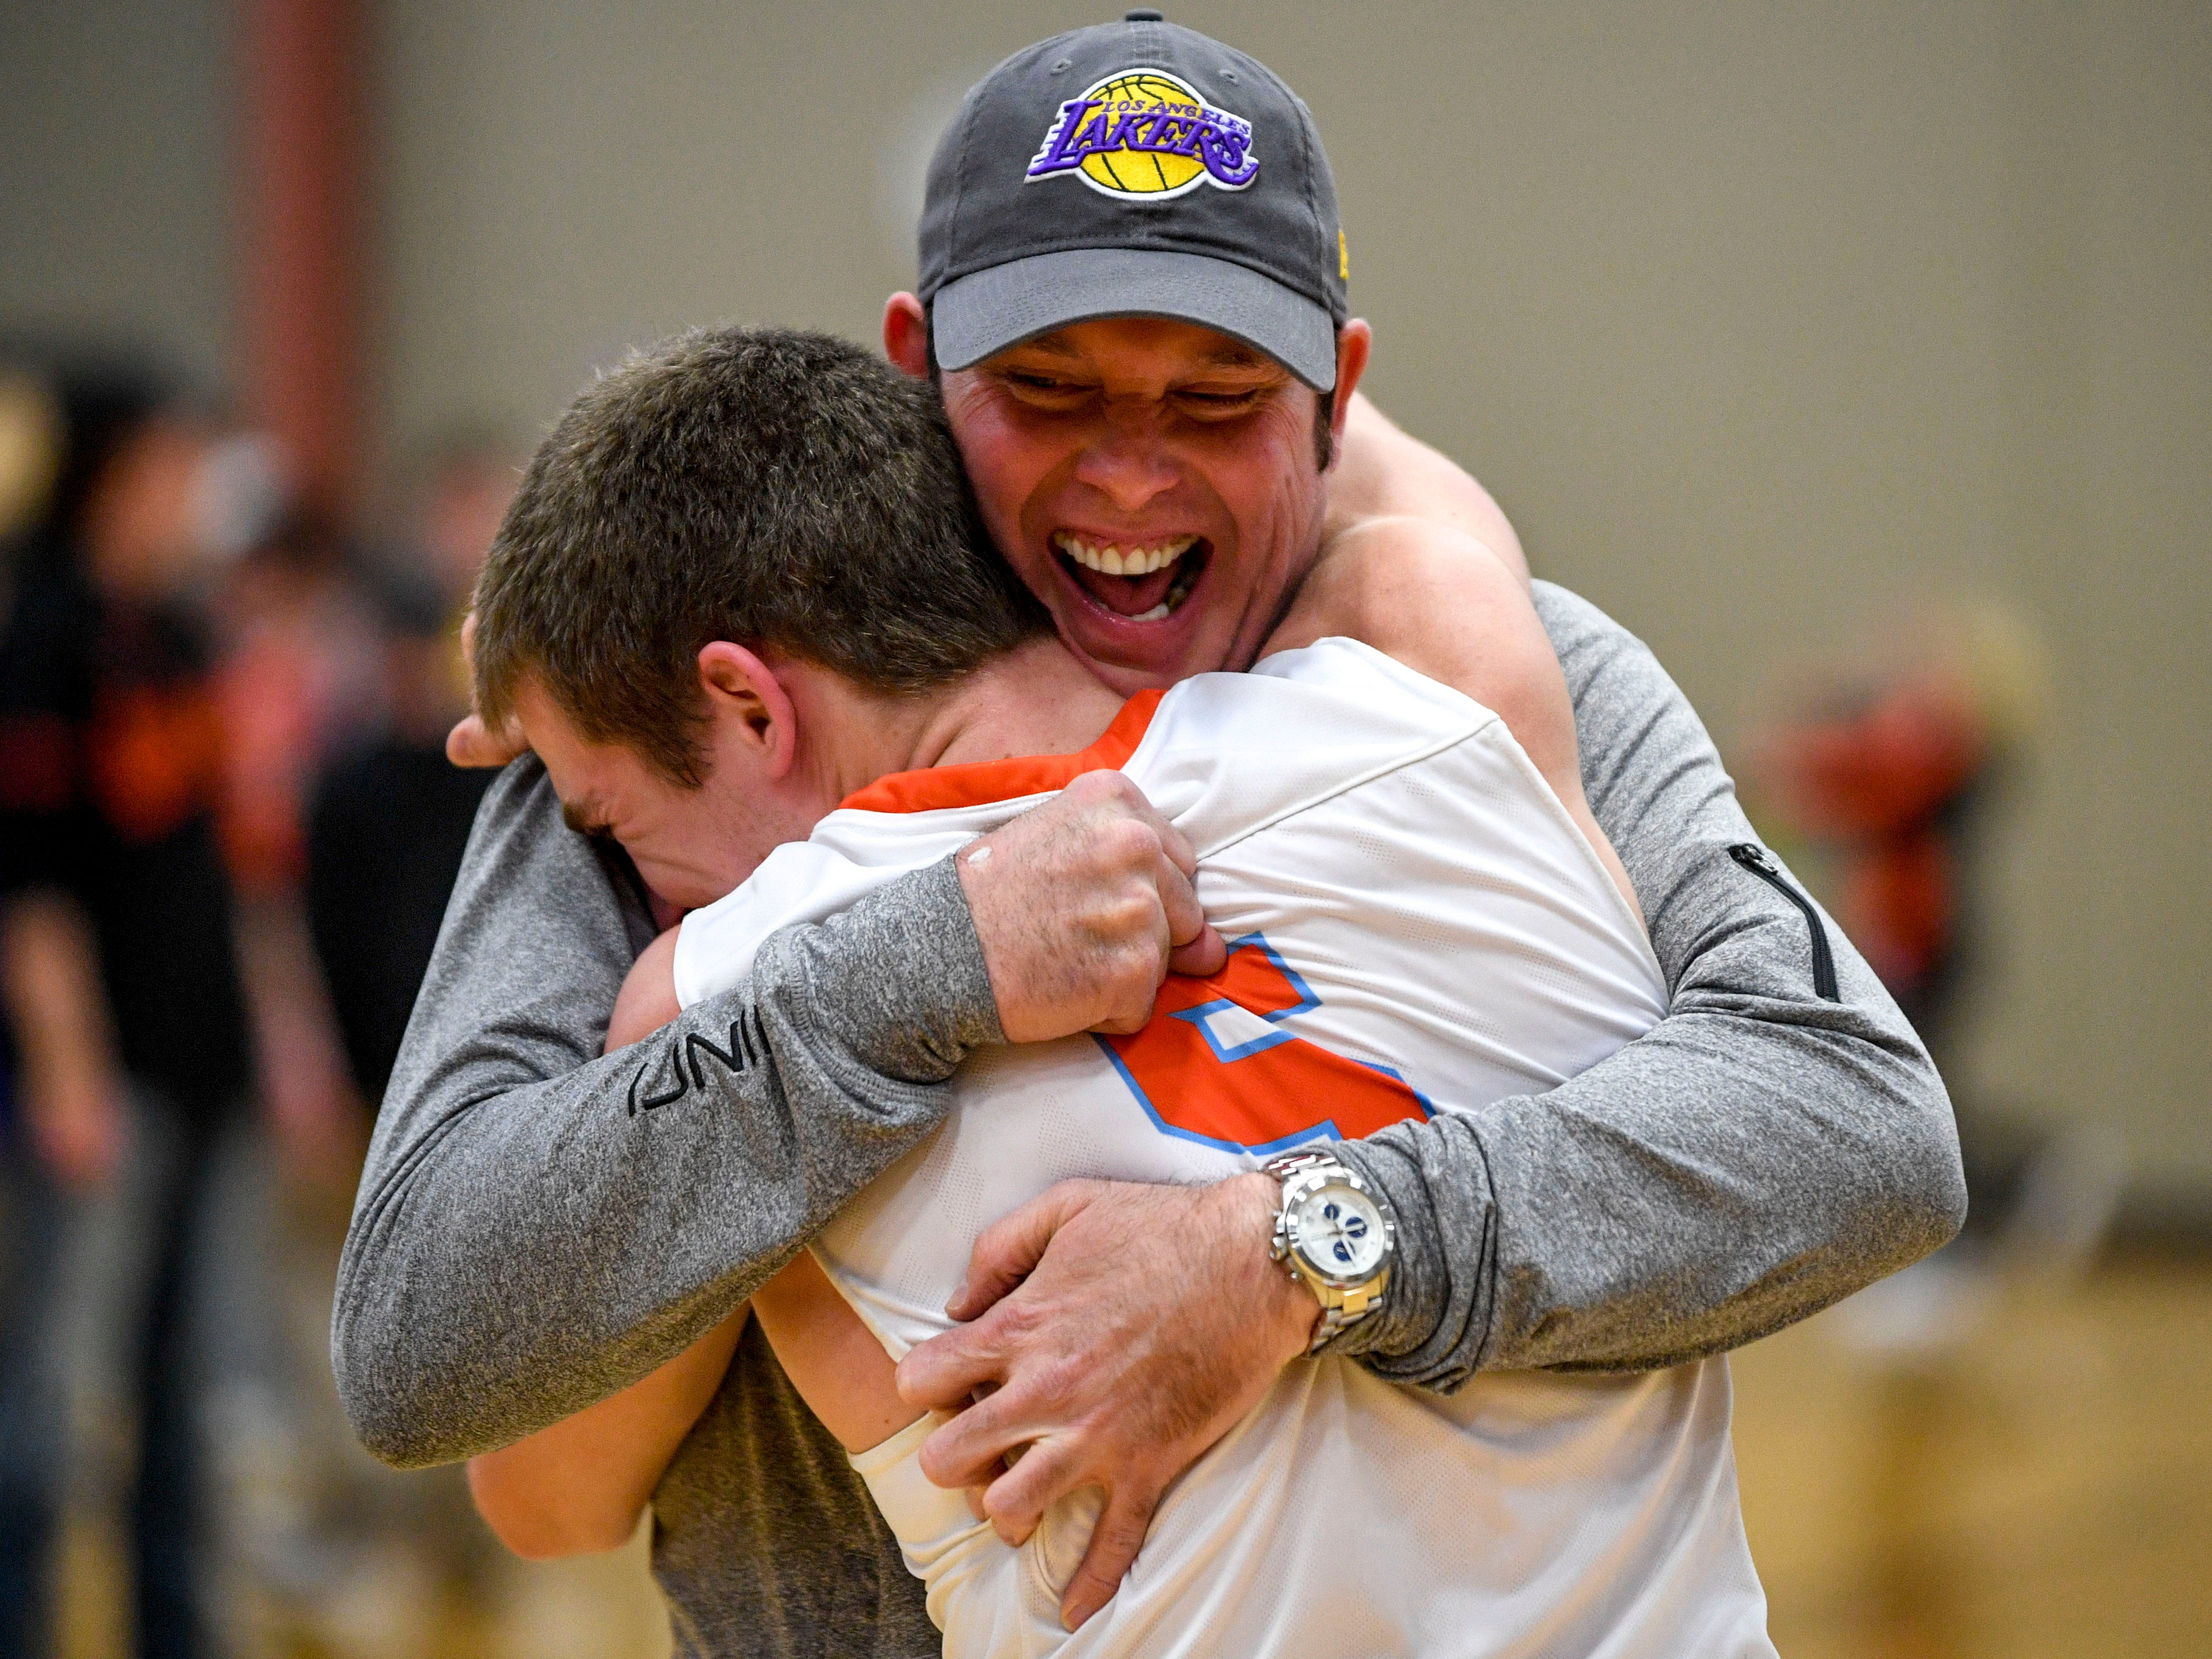 South Gibson's Nathan Hicks (5) embraces his father David Hicks after winning a TSSAA boys basketball game between South Gibson and Haywood High Schools at South Gibson High School in Medina, Tenn., on Tuesday, Nov. 27, 2018.